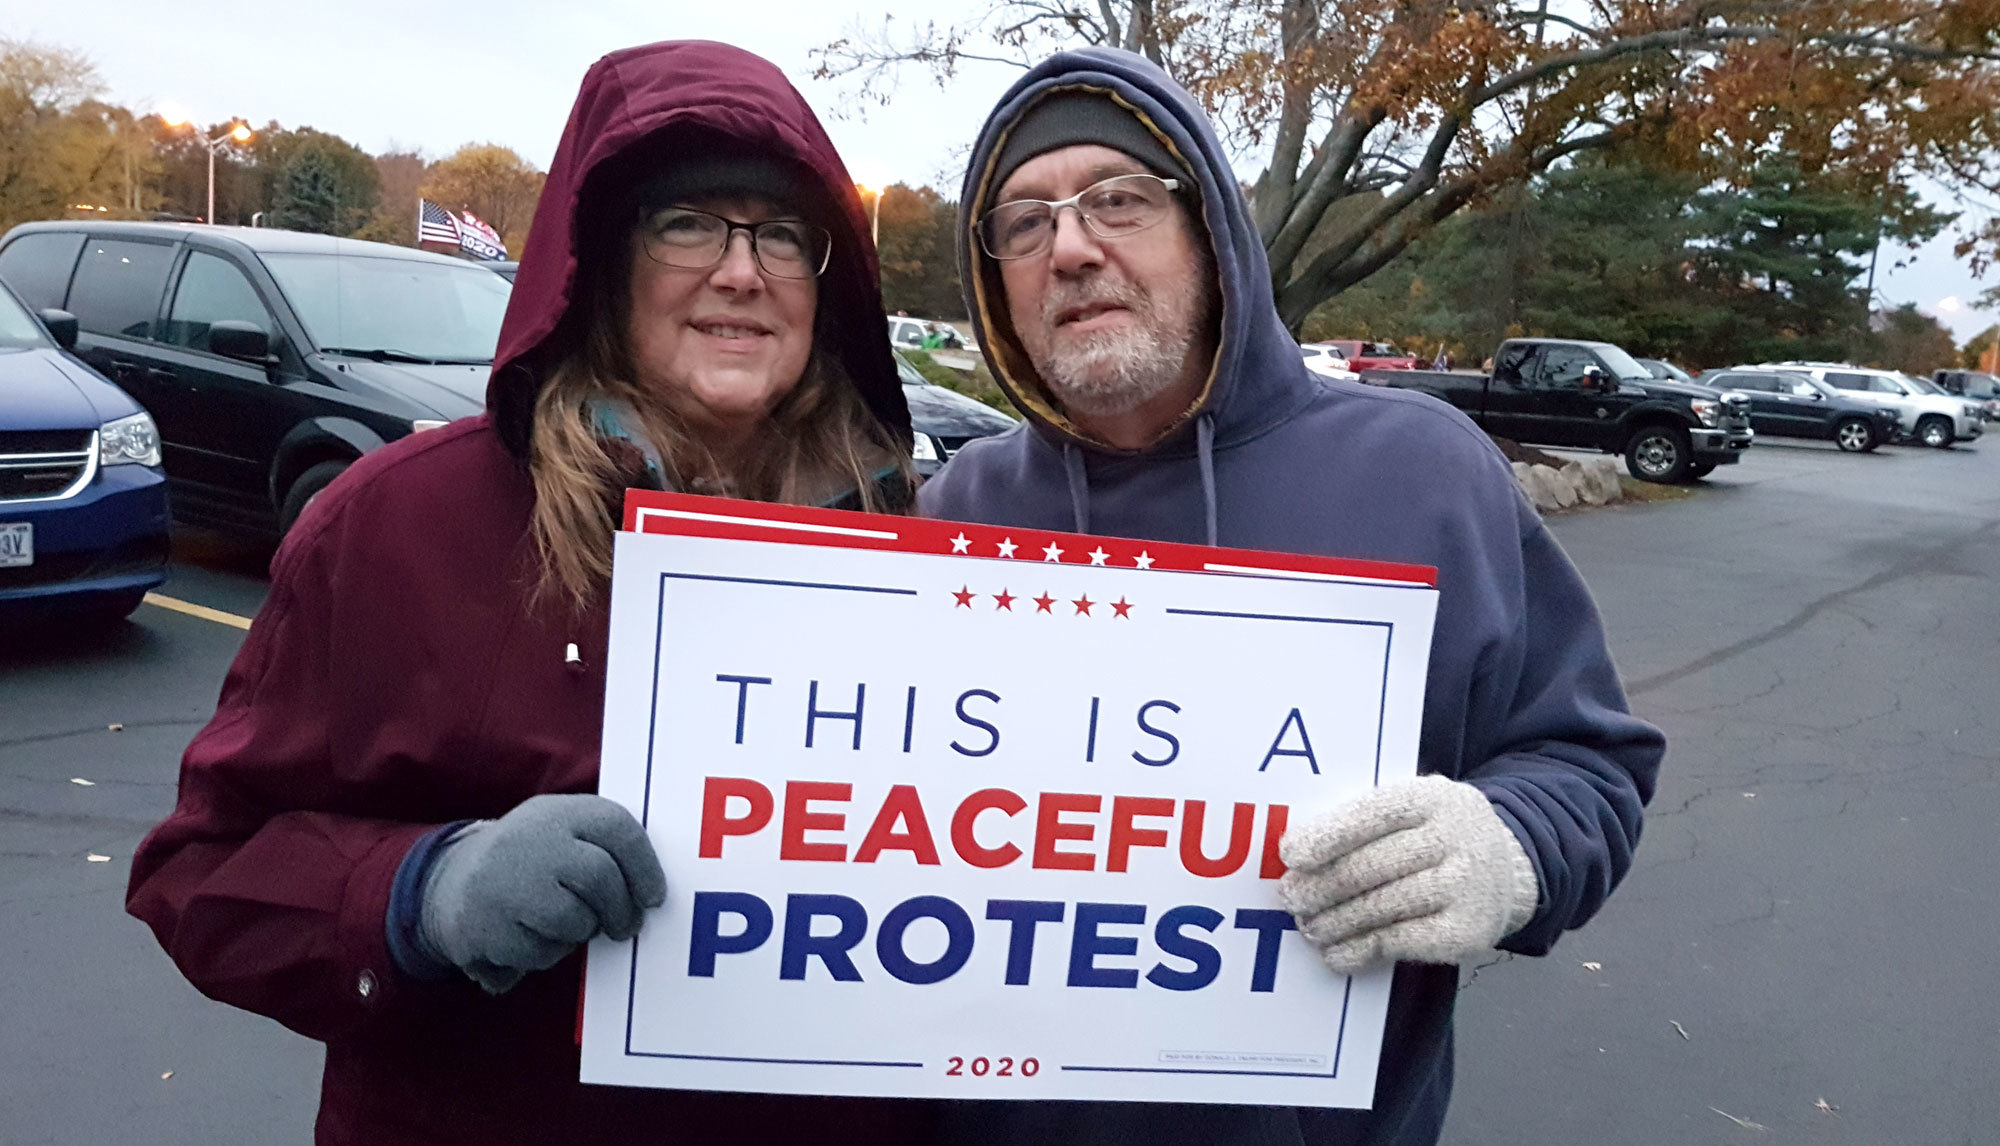 Mary and Todd Twining are staunch Trump supporters. Todd Twining said, 'You see more enthusiasm [for Trump] than 2016.' (Mark Gollom/CBC)